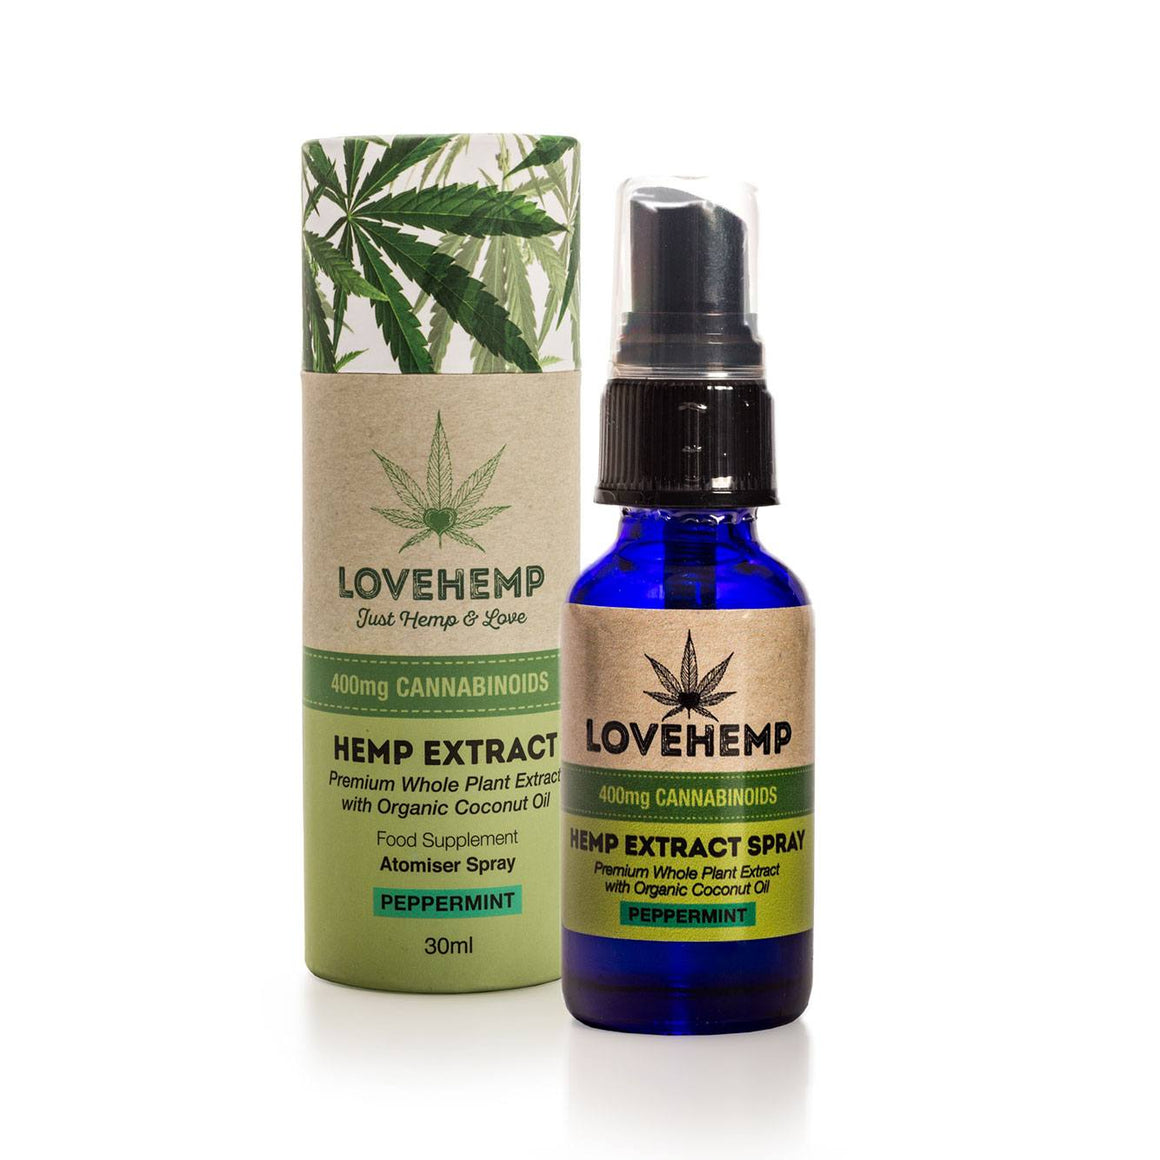 Love Hemp 200mg 30ml Oil